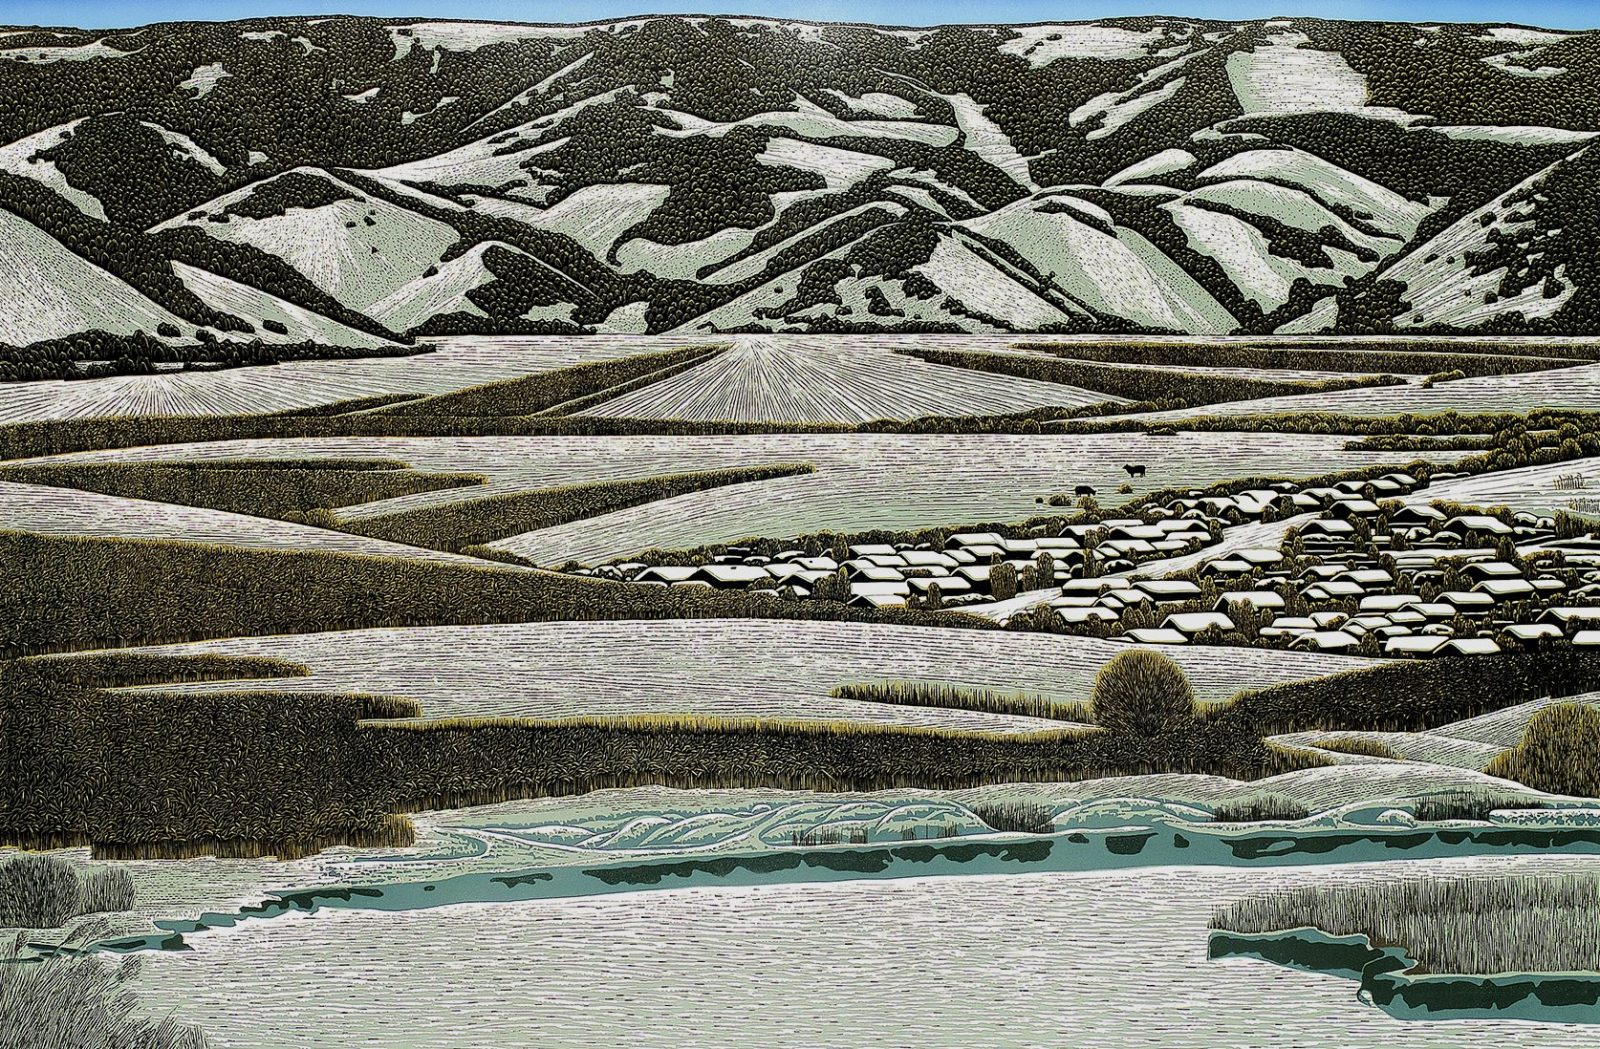 The-Winter-at-Lianghe-Village-by-Yu-Chengyou100x150cmwoodcut-2011Artchina